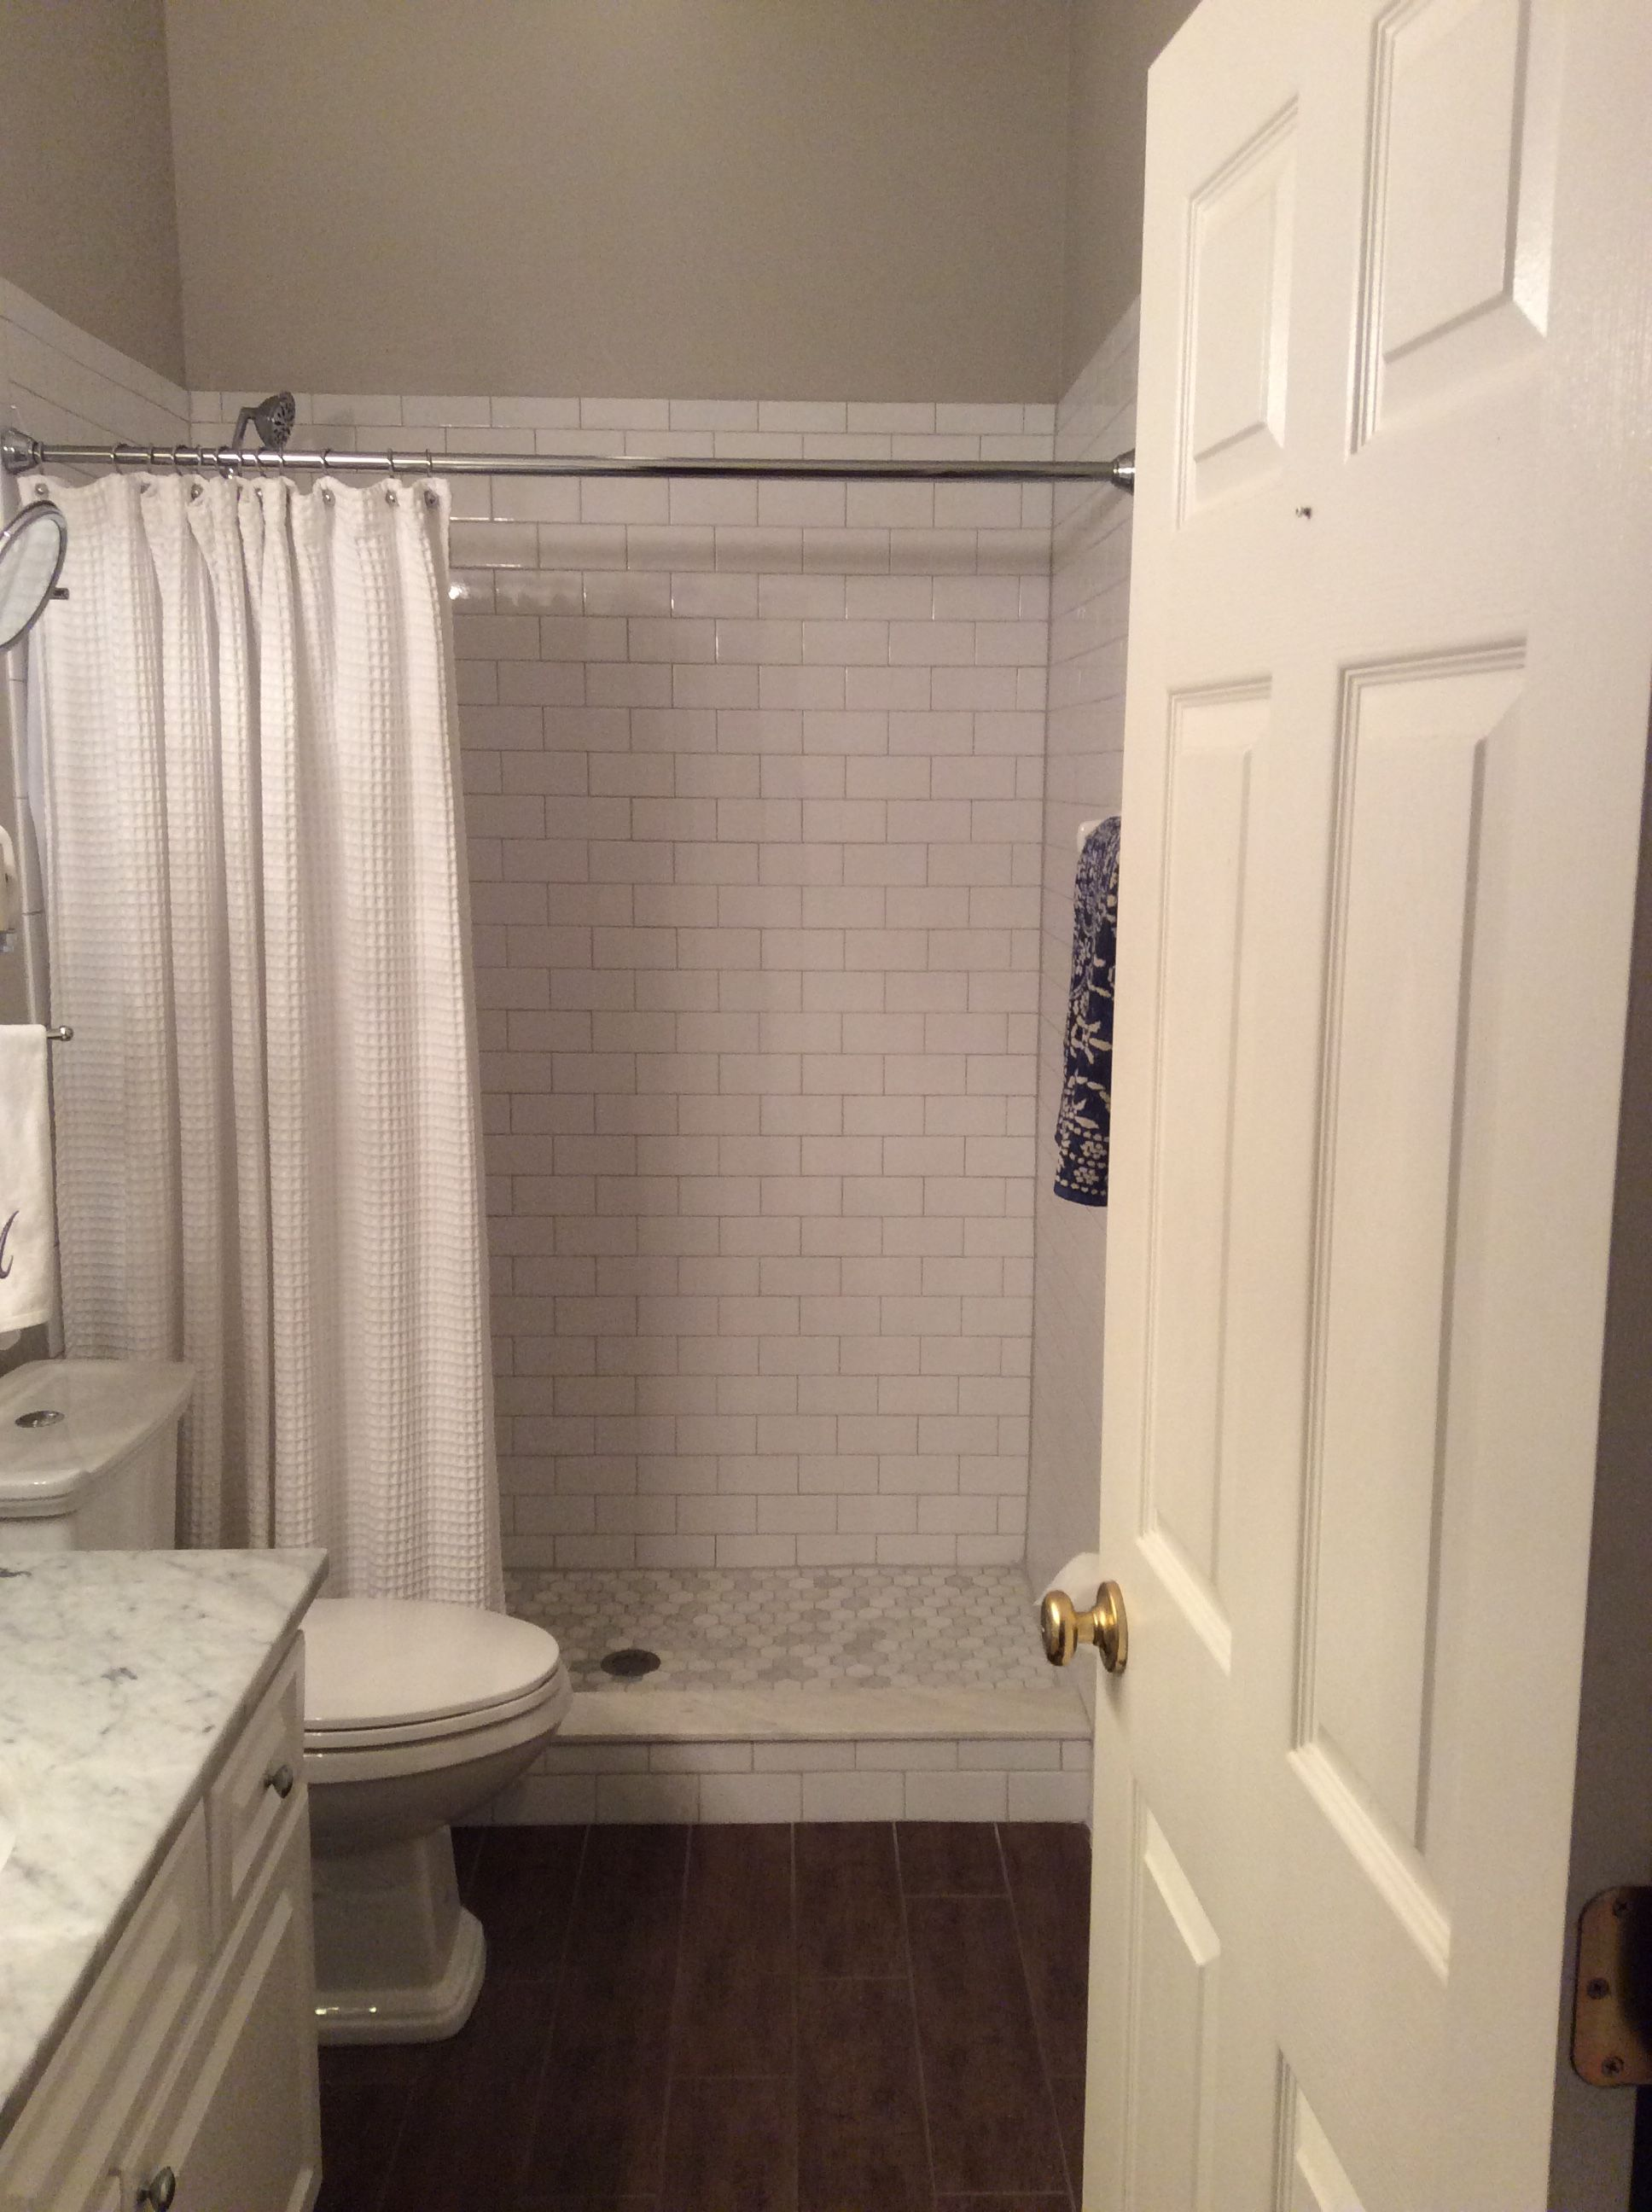 white subway tile mapei grout in warm gray marble. Black Bedroom Furniture Sets. Home Design Ideas